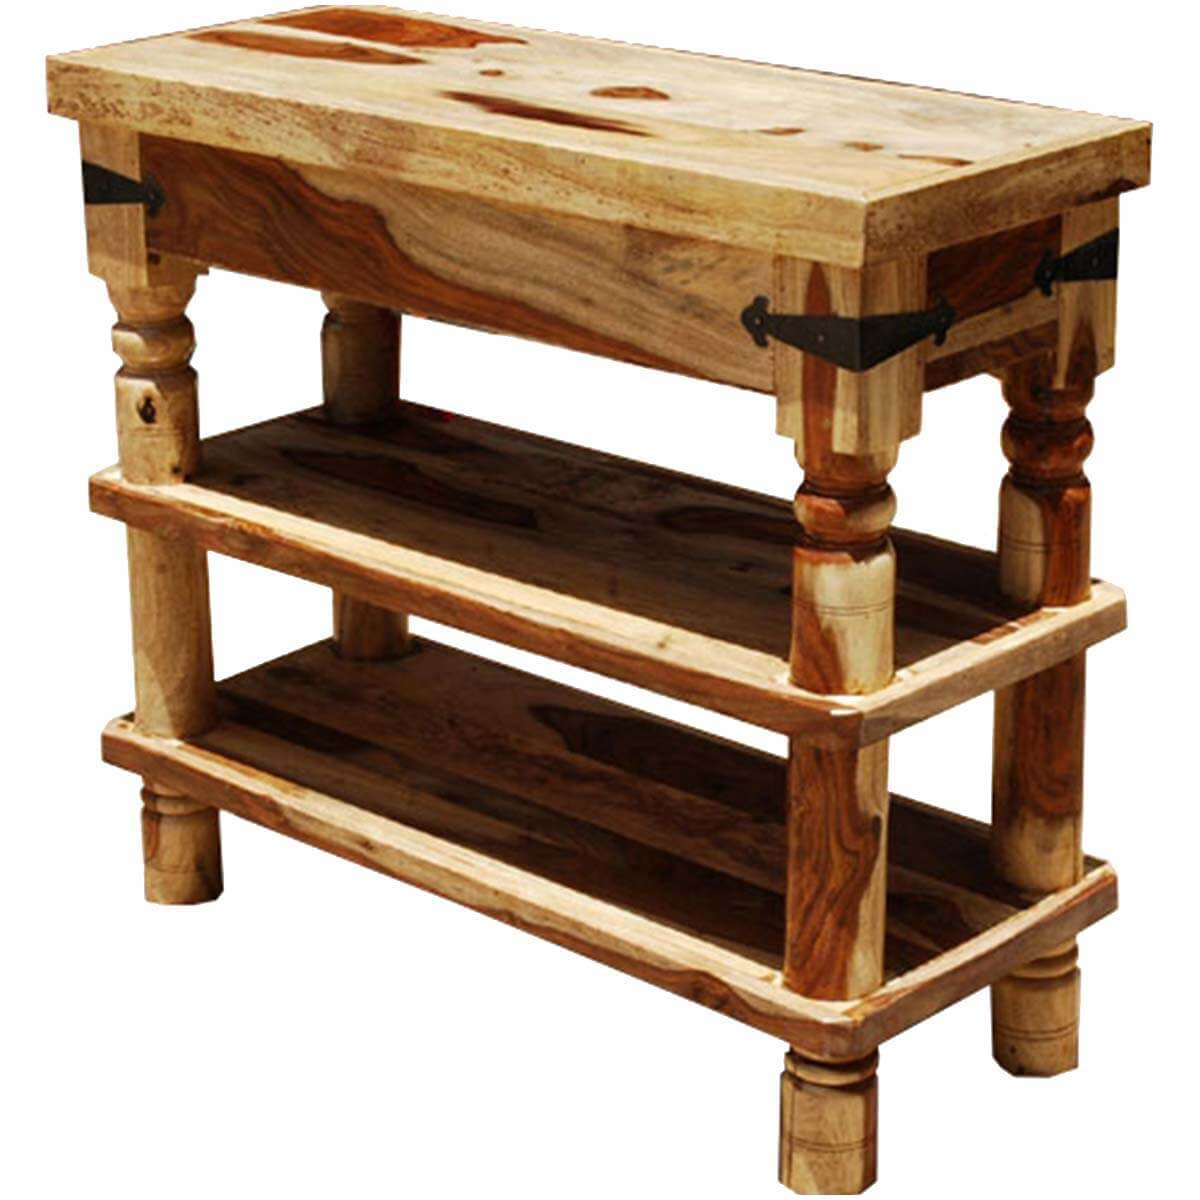 Appalachian Rustic 3 Tier Hall Console Table